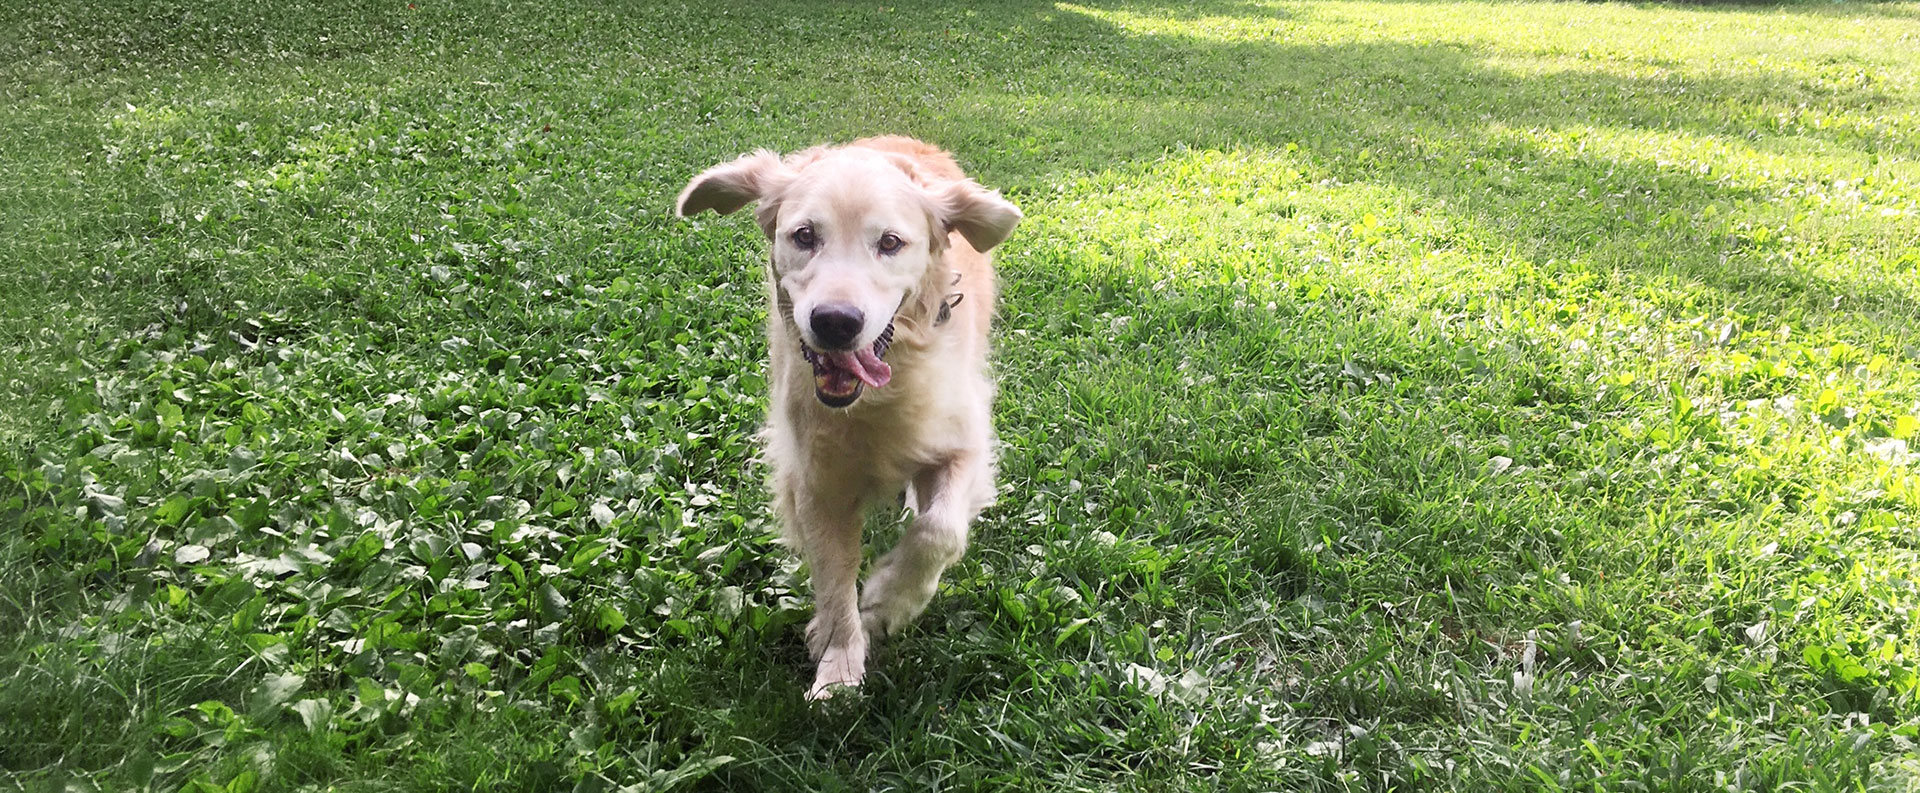 Golden Retriever running in the grass